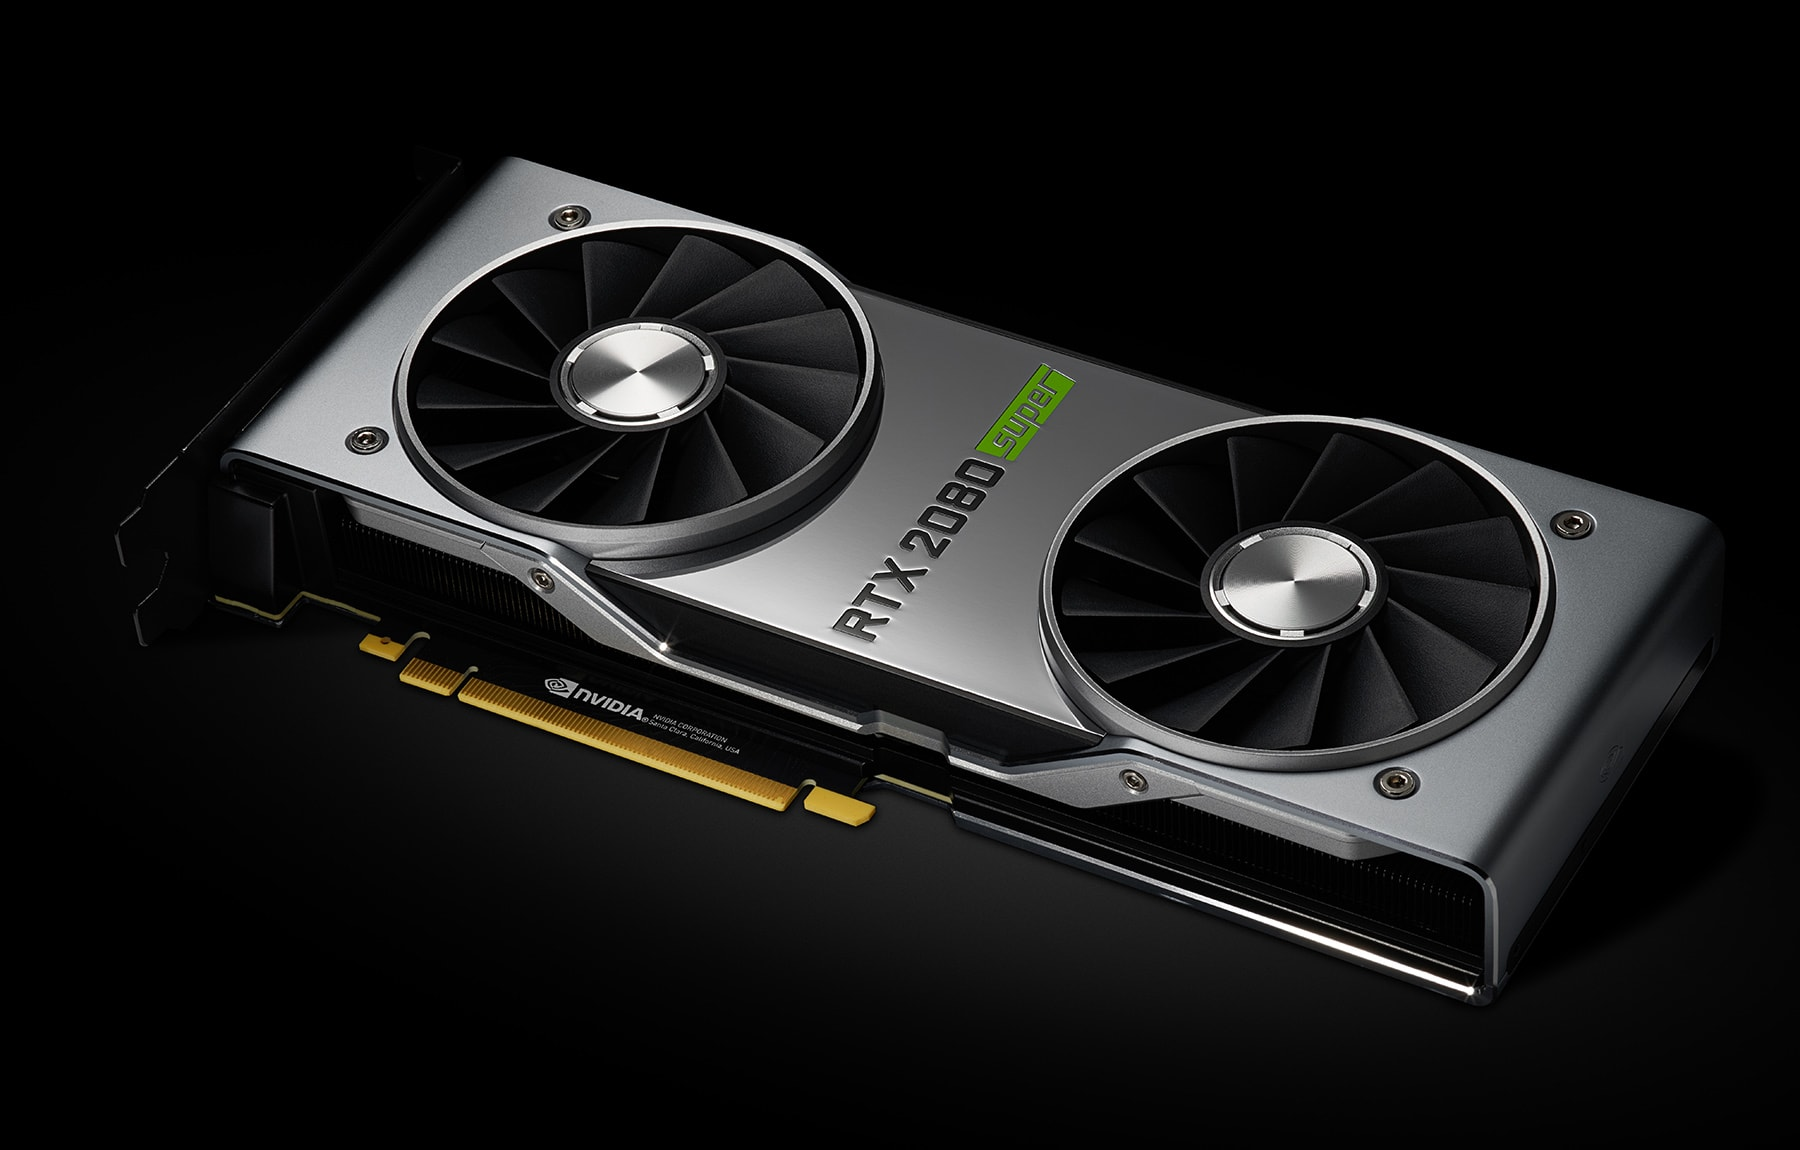 NVIDIA's new RTX Super cards are a pre-emptive strike on AMD